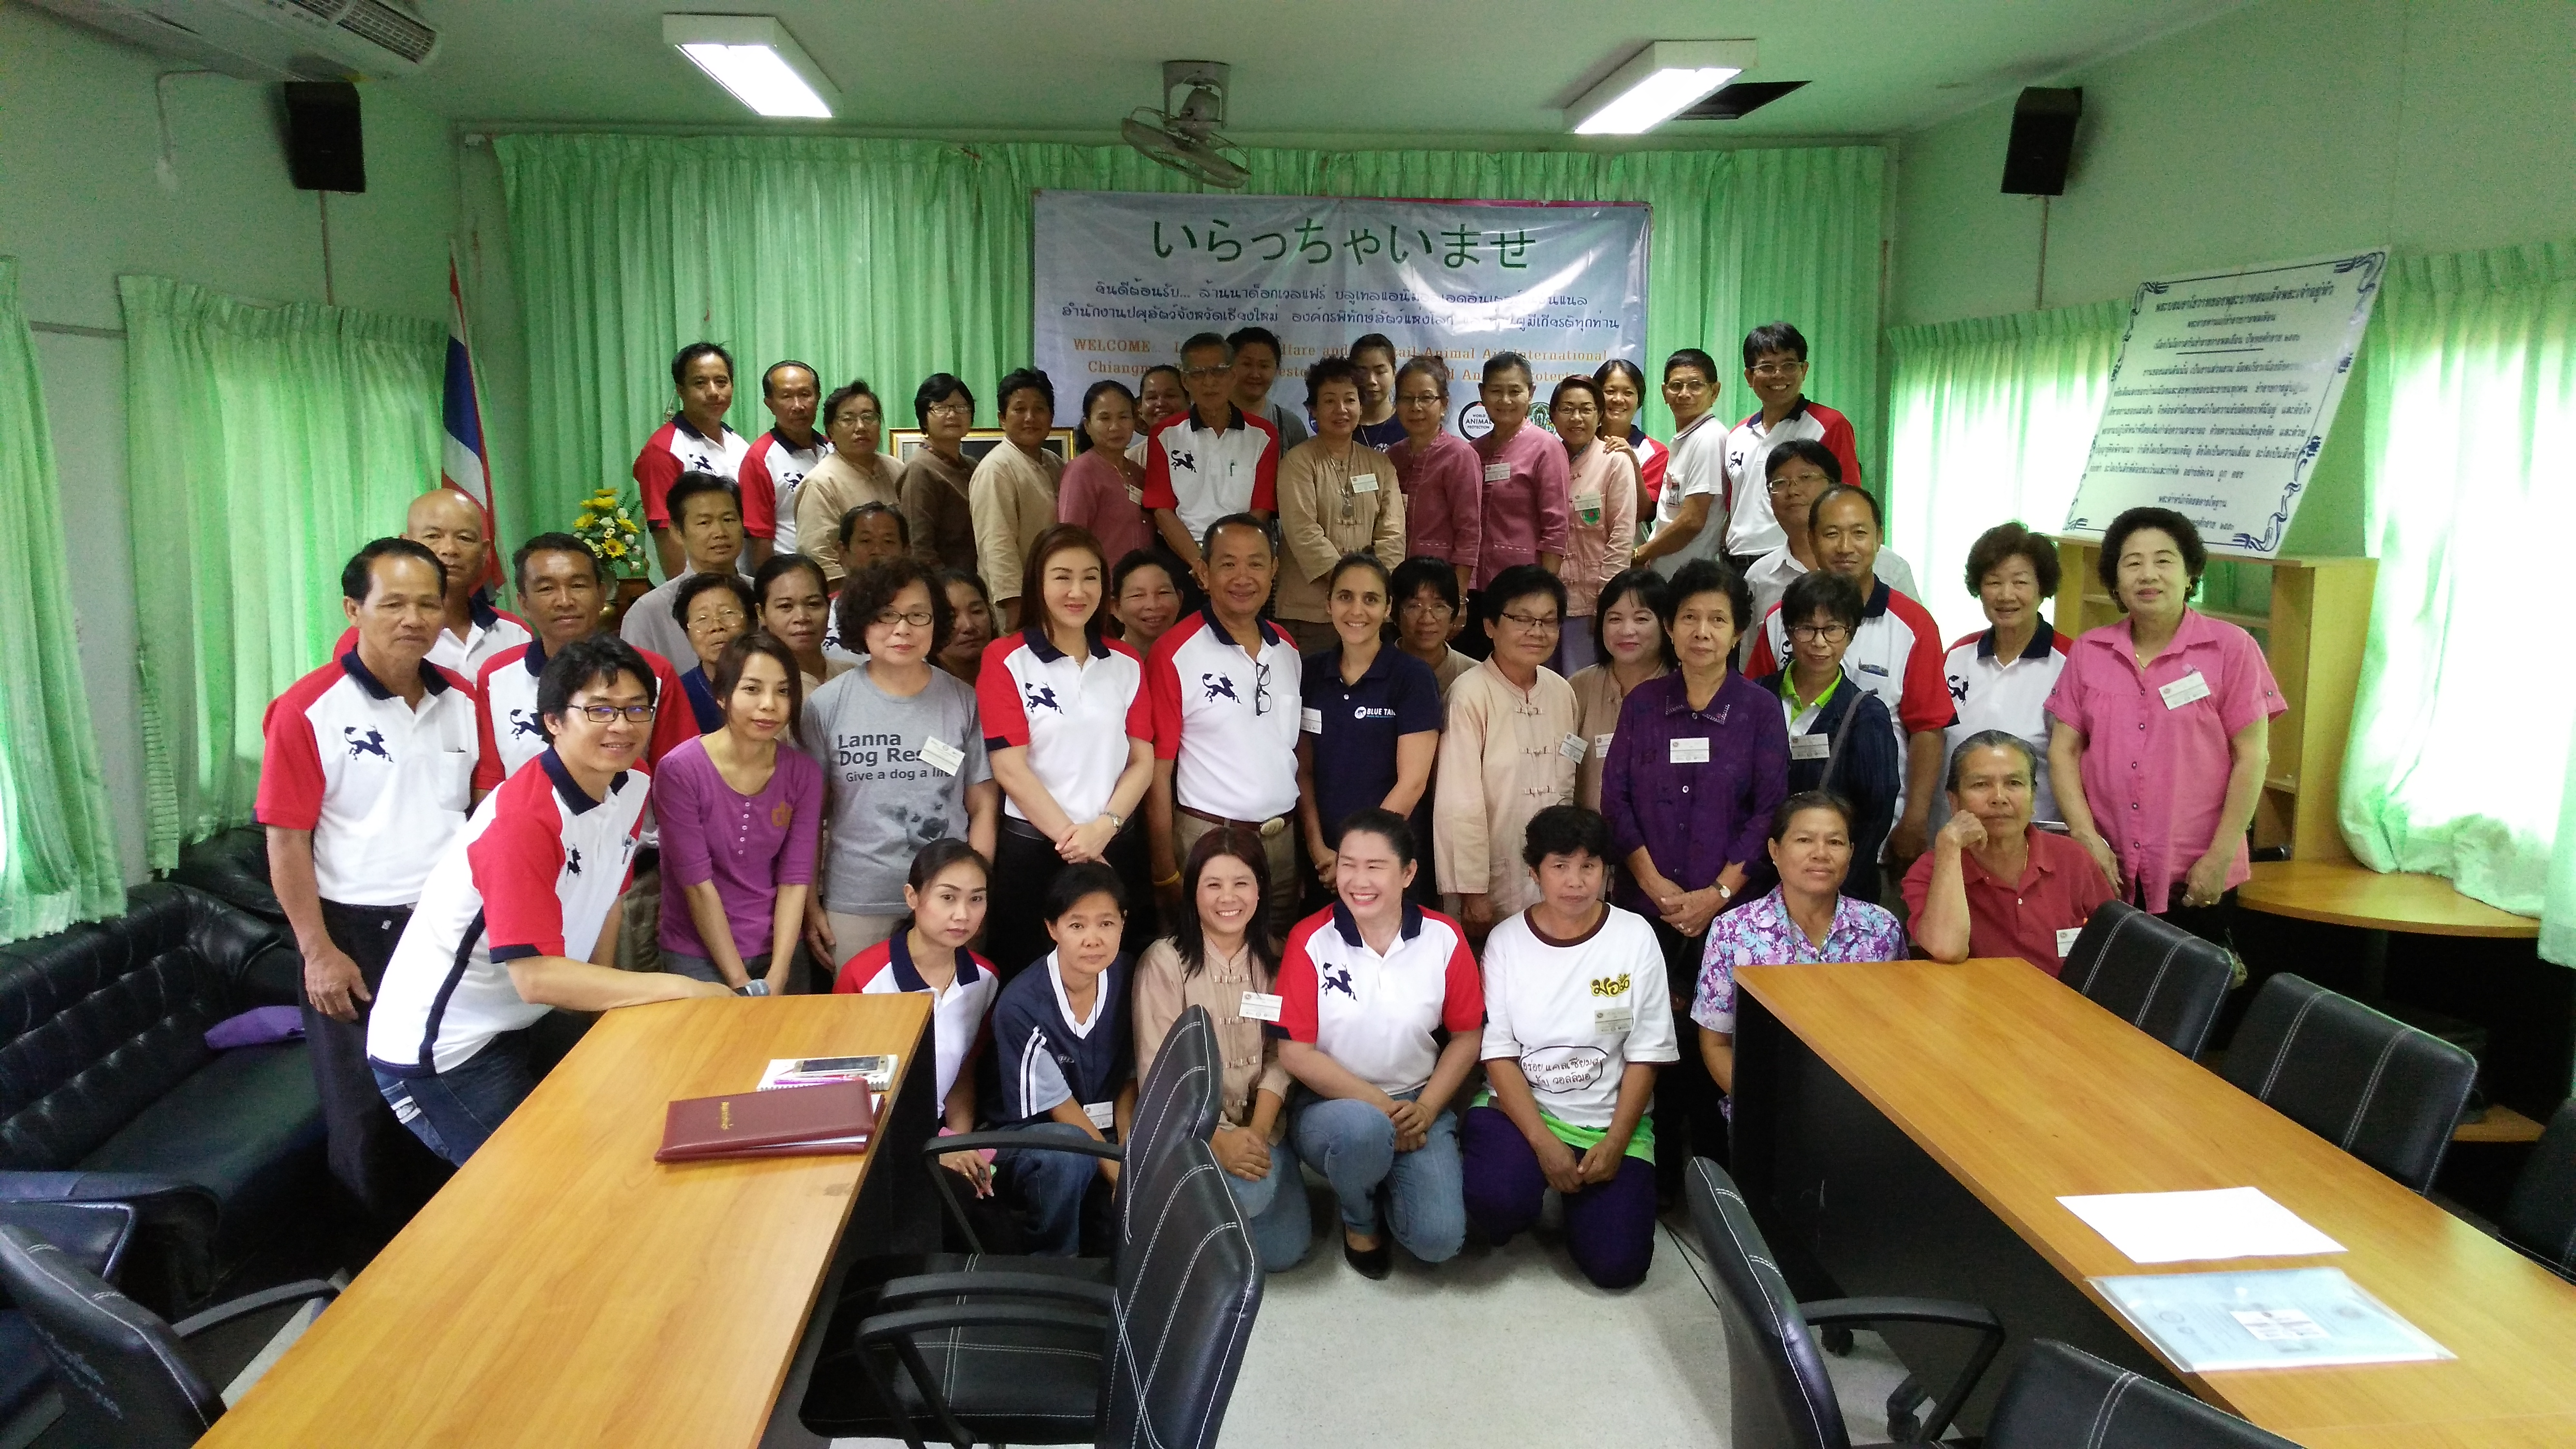 Rabies and humane handling workshop